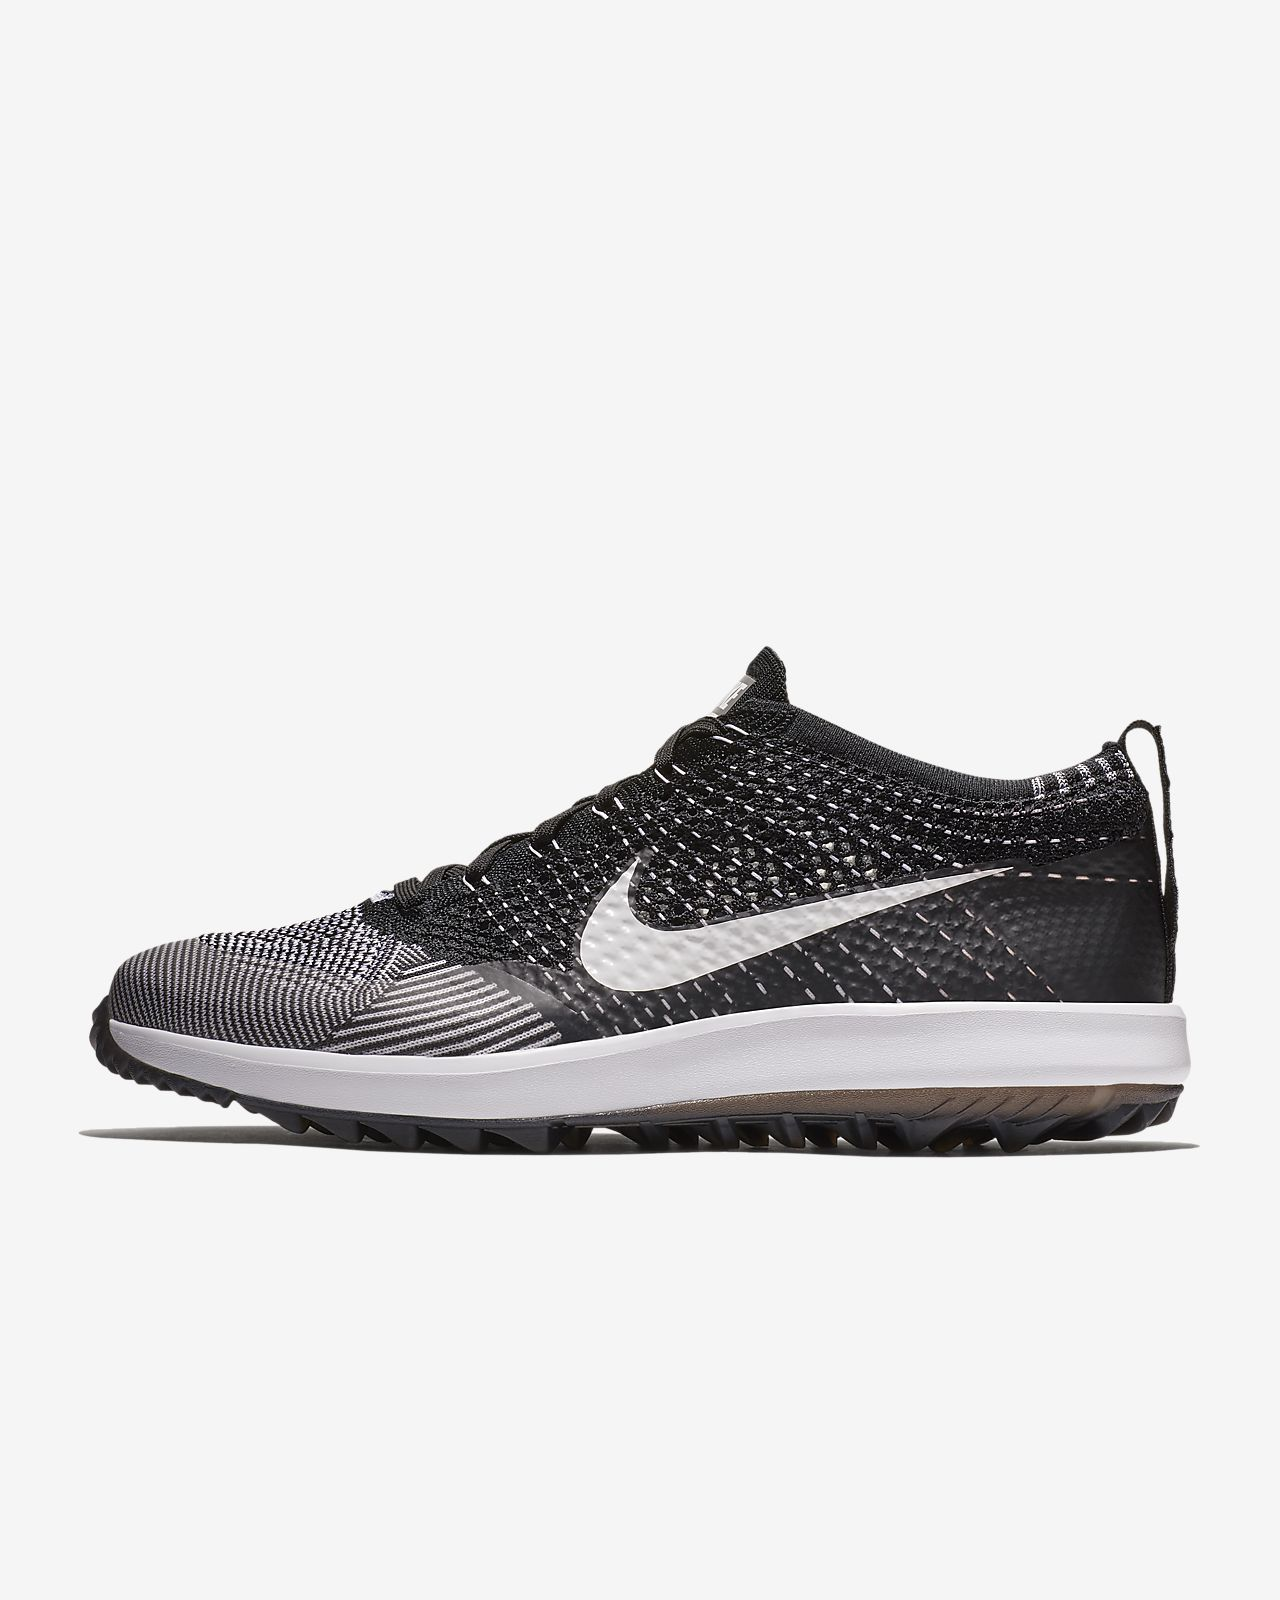 Chaussures Nike Coureur Noir Taille 45 Hommes rYnFejNaef